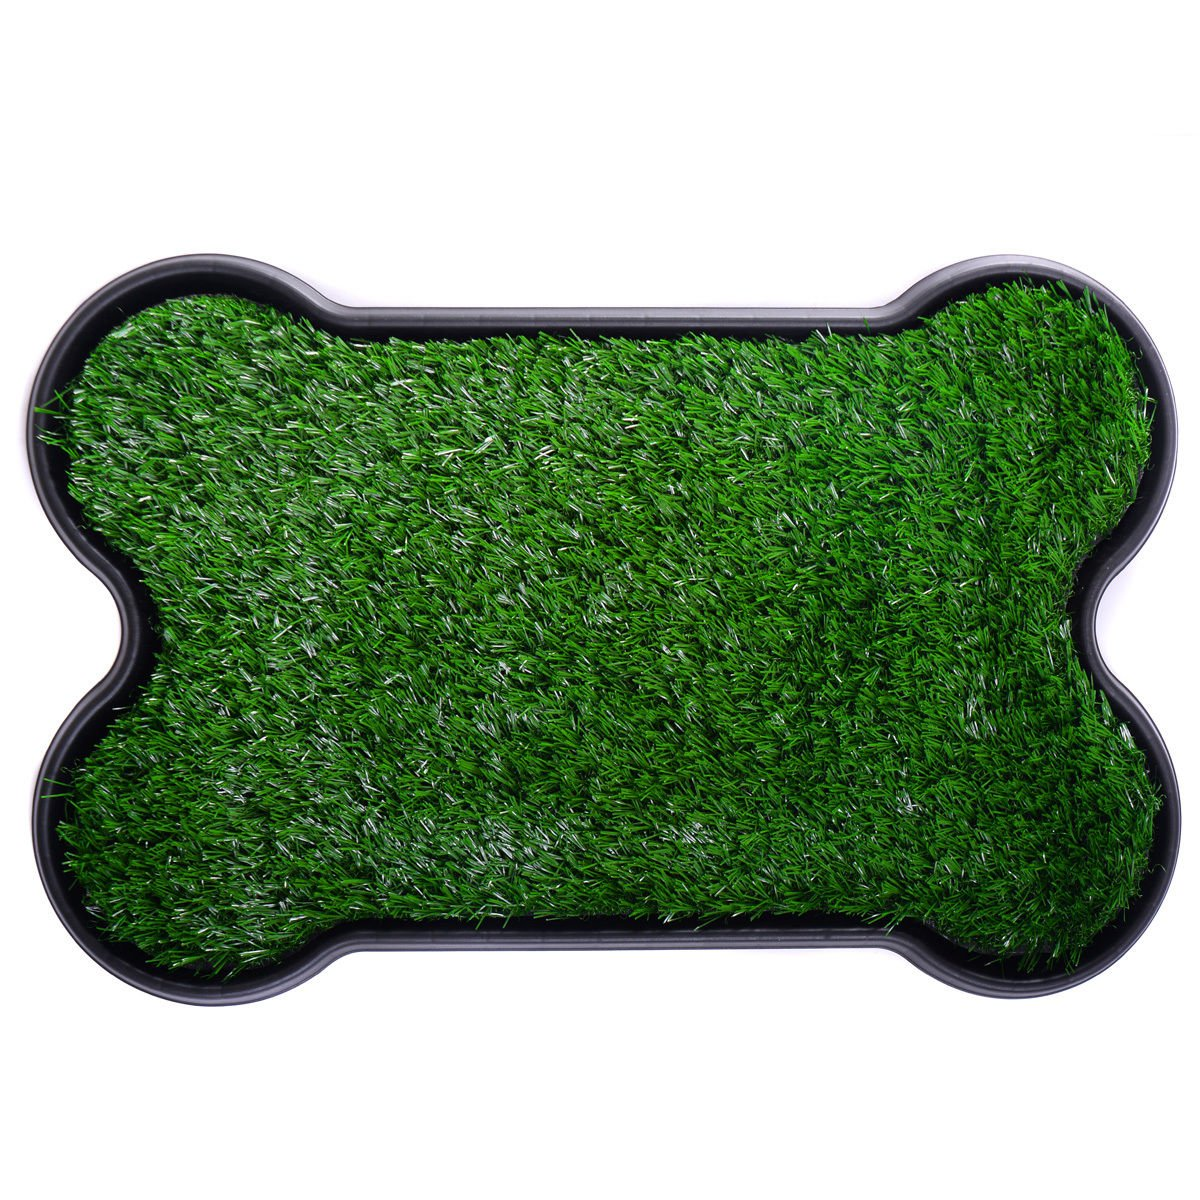 Pet Dog Toilet Trainer Grass Mat Potty Pad Urinary Indoor House Litter Tray